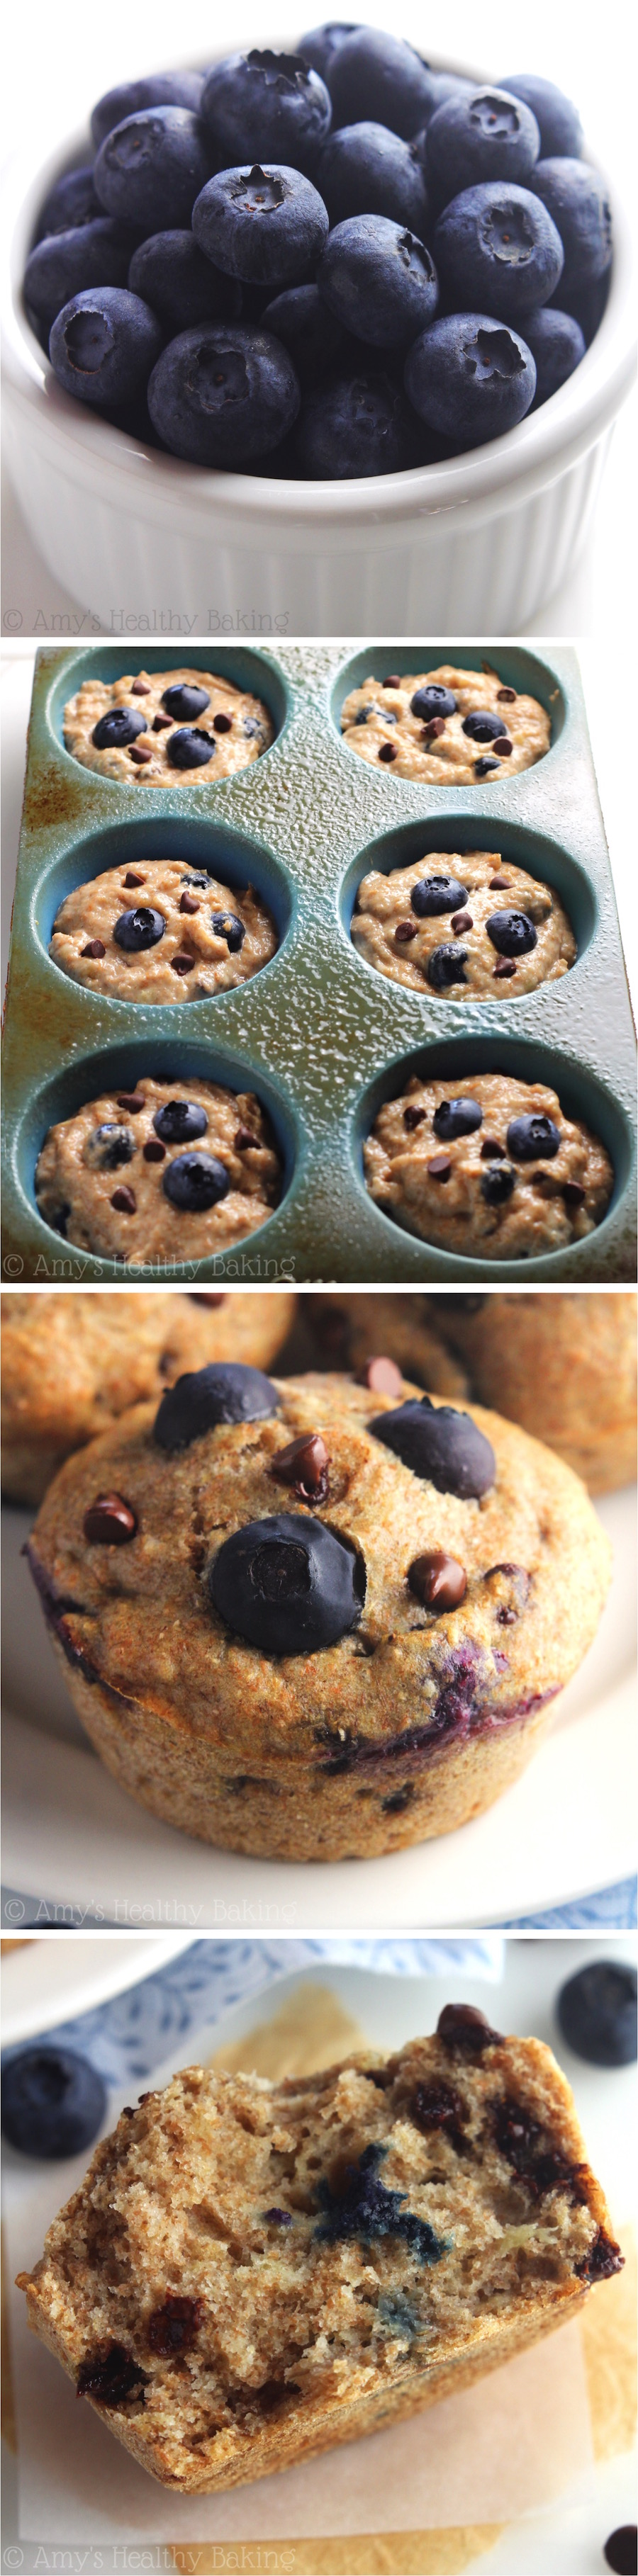 Clean-Eating Chocolate Chip Blueberry Banana Muffins -- this healthy recipe has the same texture cupcakes! Just 135 calories & packed with 3 superfoods!